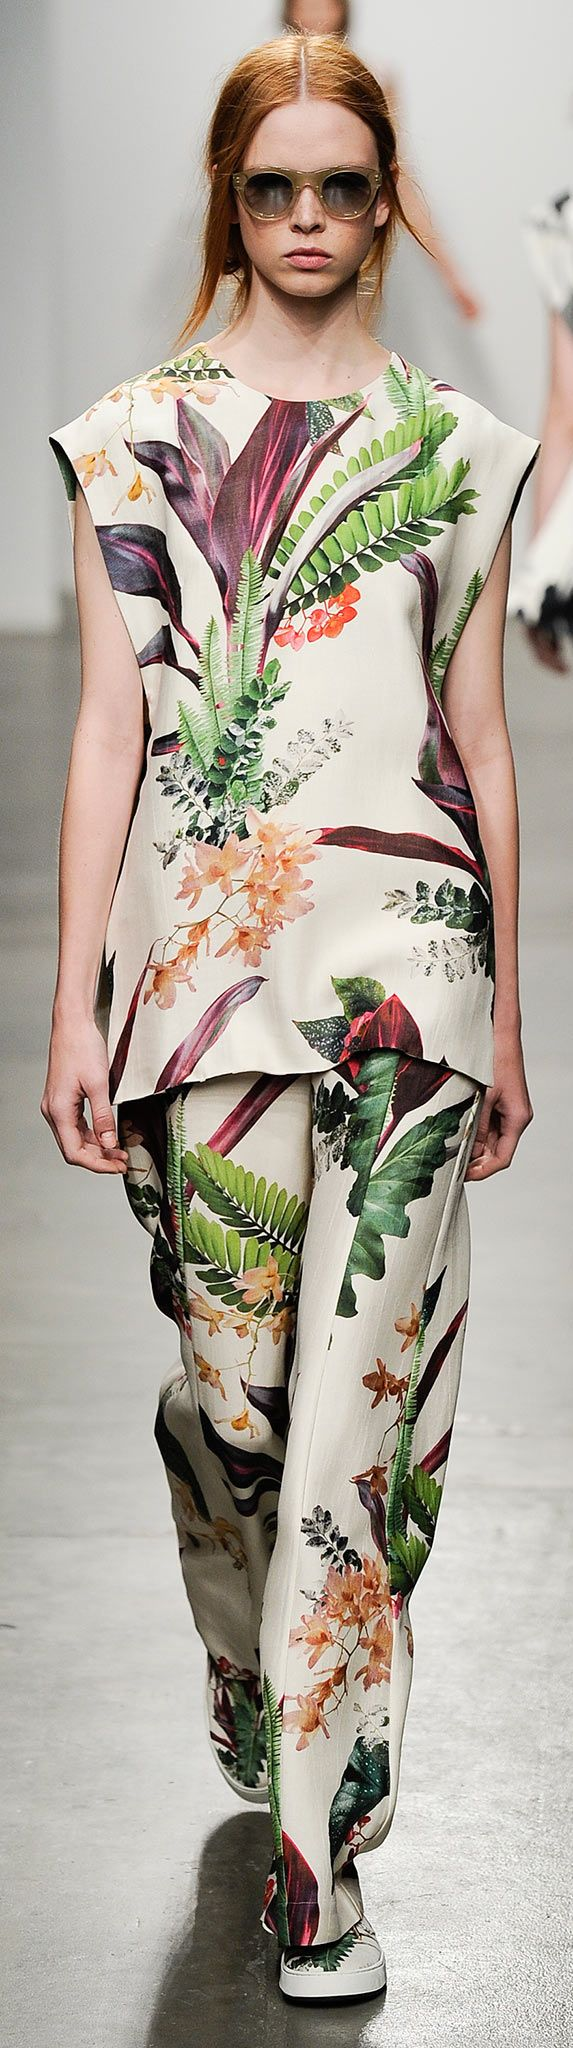 www.thefabricstore.com.au | Floral Inspiration - Osklen Spring 2015